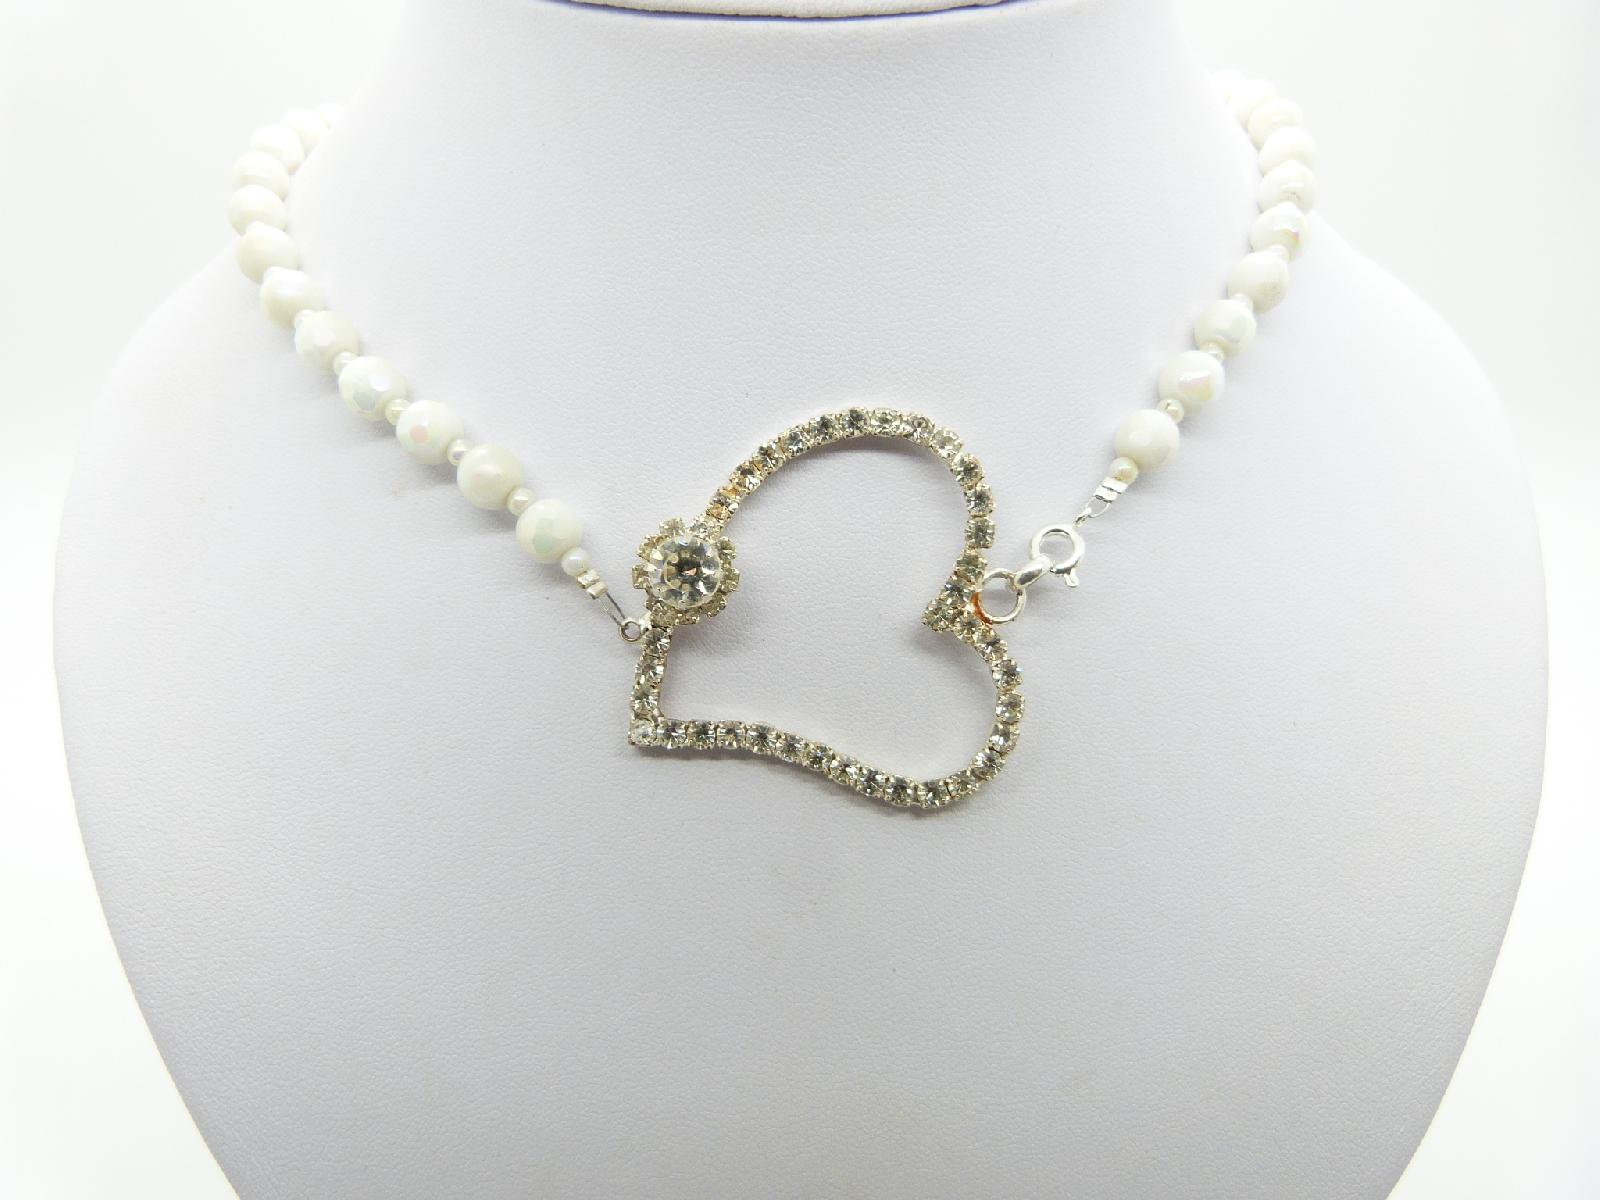 £20.00 - Vintage Redesigned 50s White AB Glass Bead Necklace with Large Diamante Heart